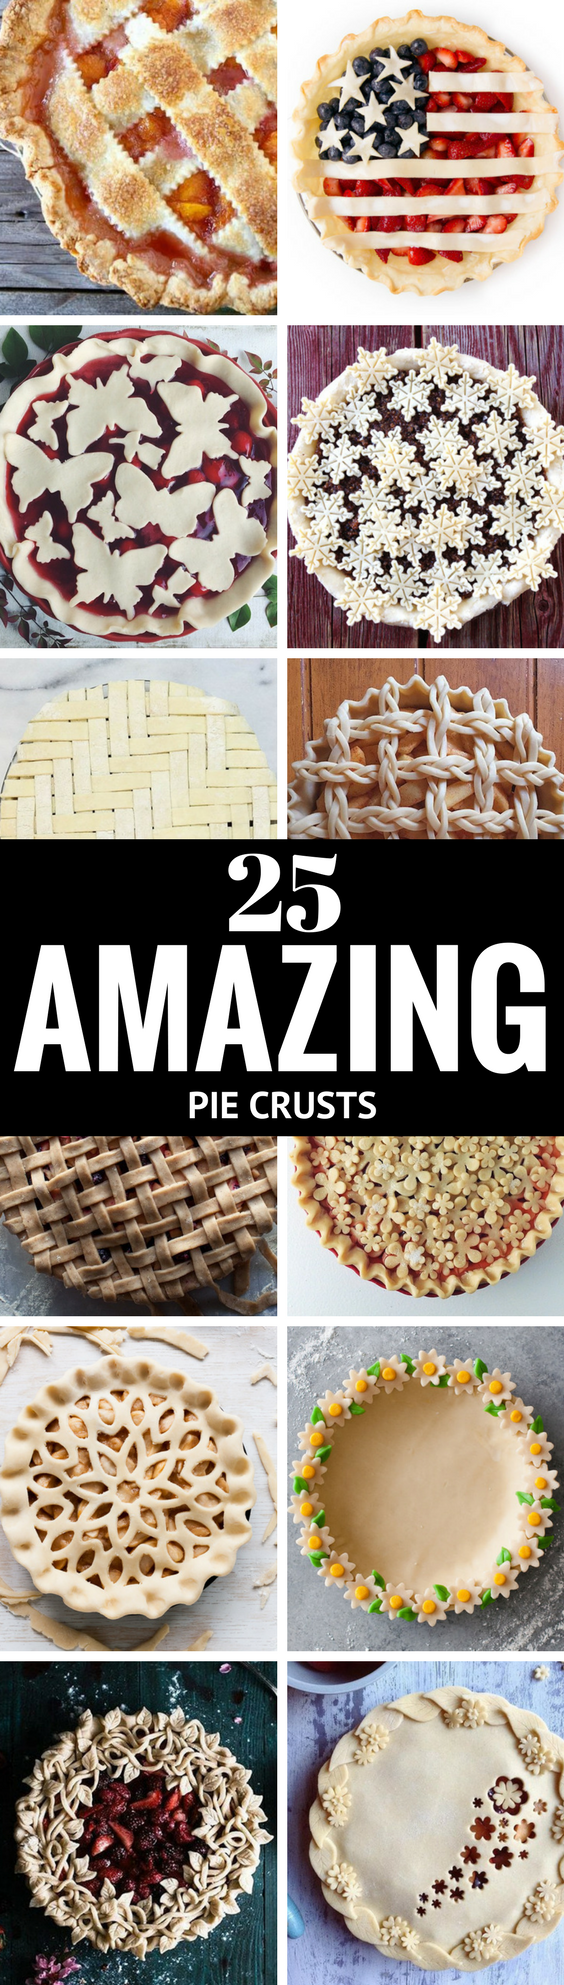 25 Amazing Pie Crusts ~pin